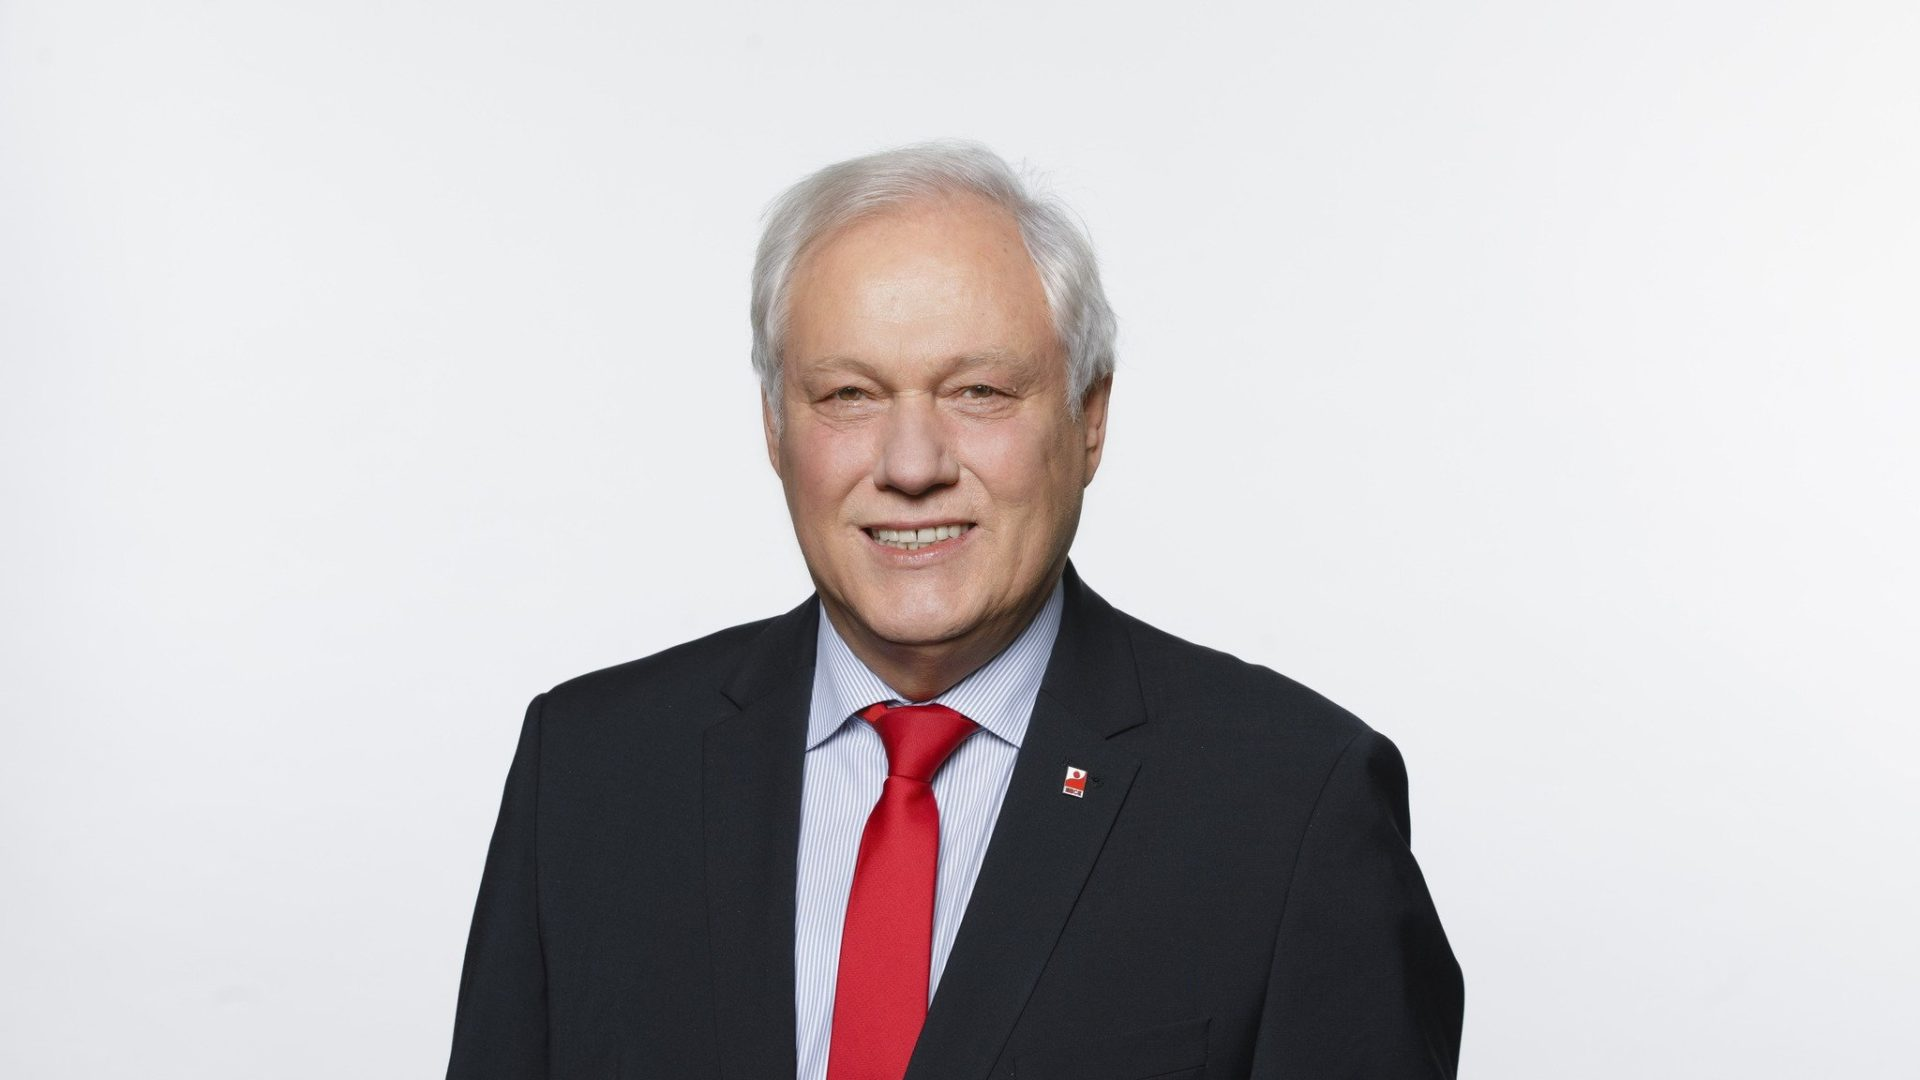 Ulrich Freese, MdB